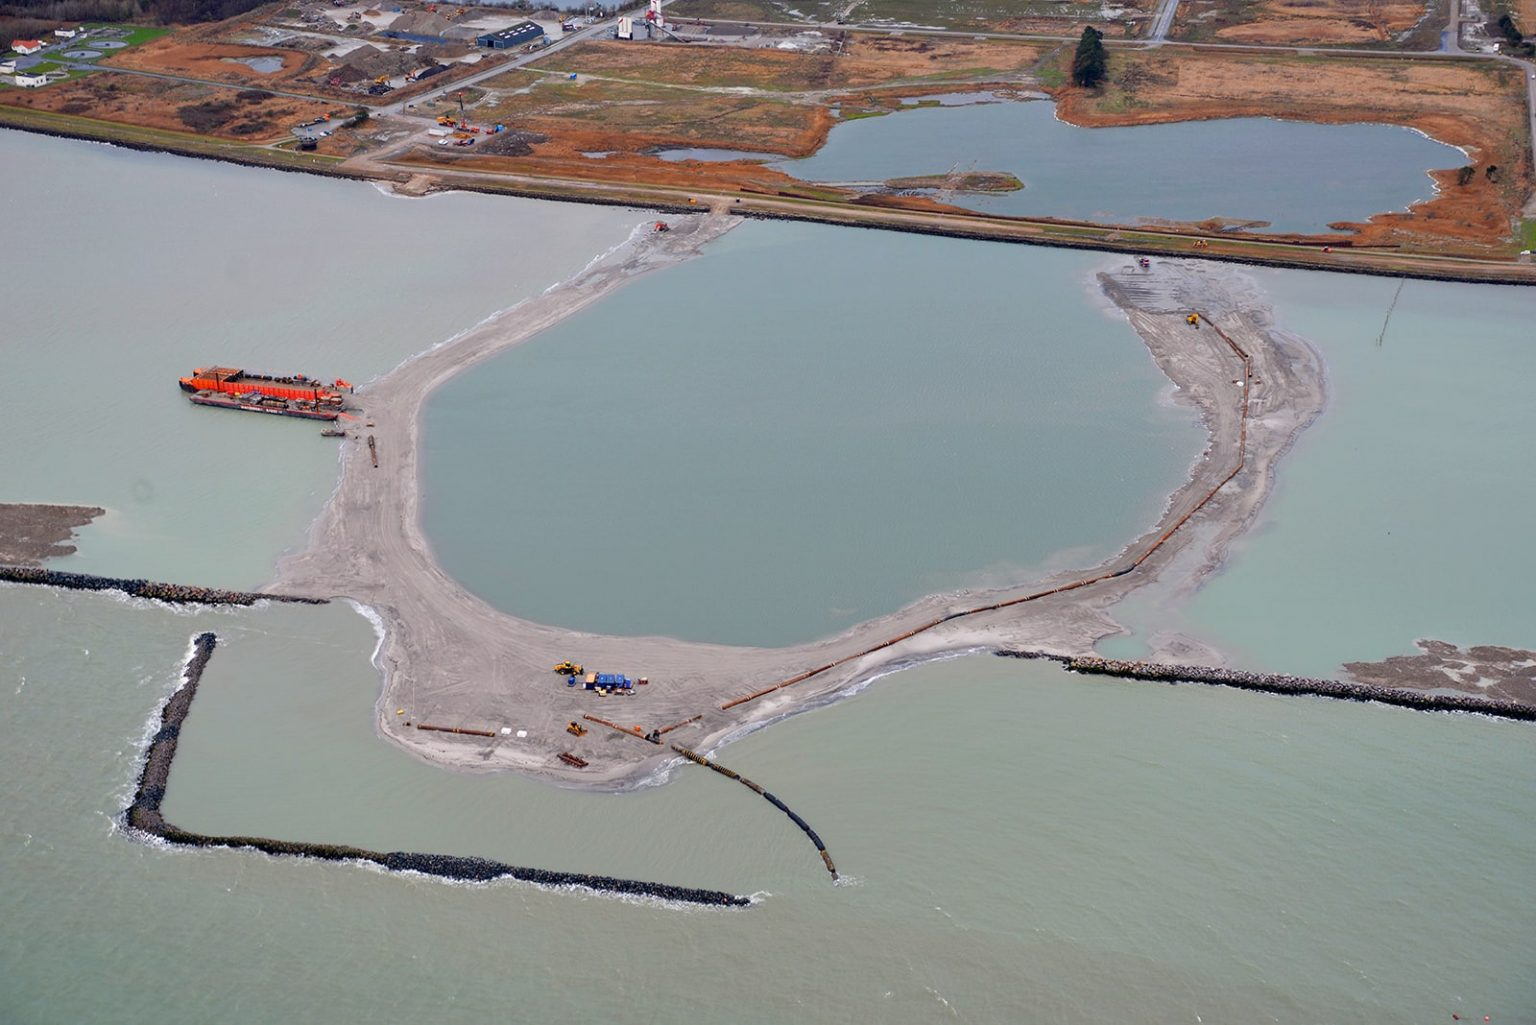 Overview of the Fehmarn Belt Link Project